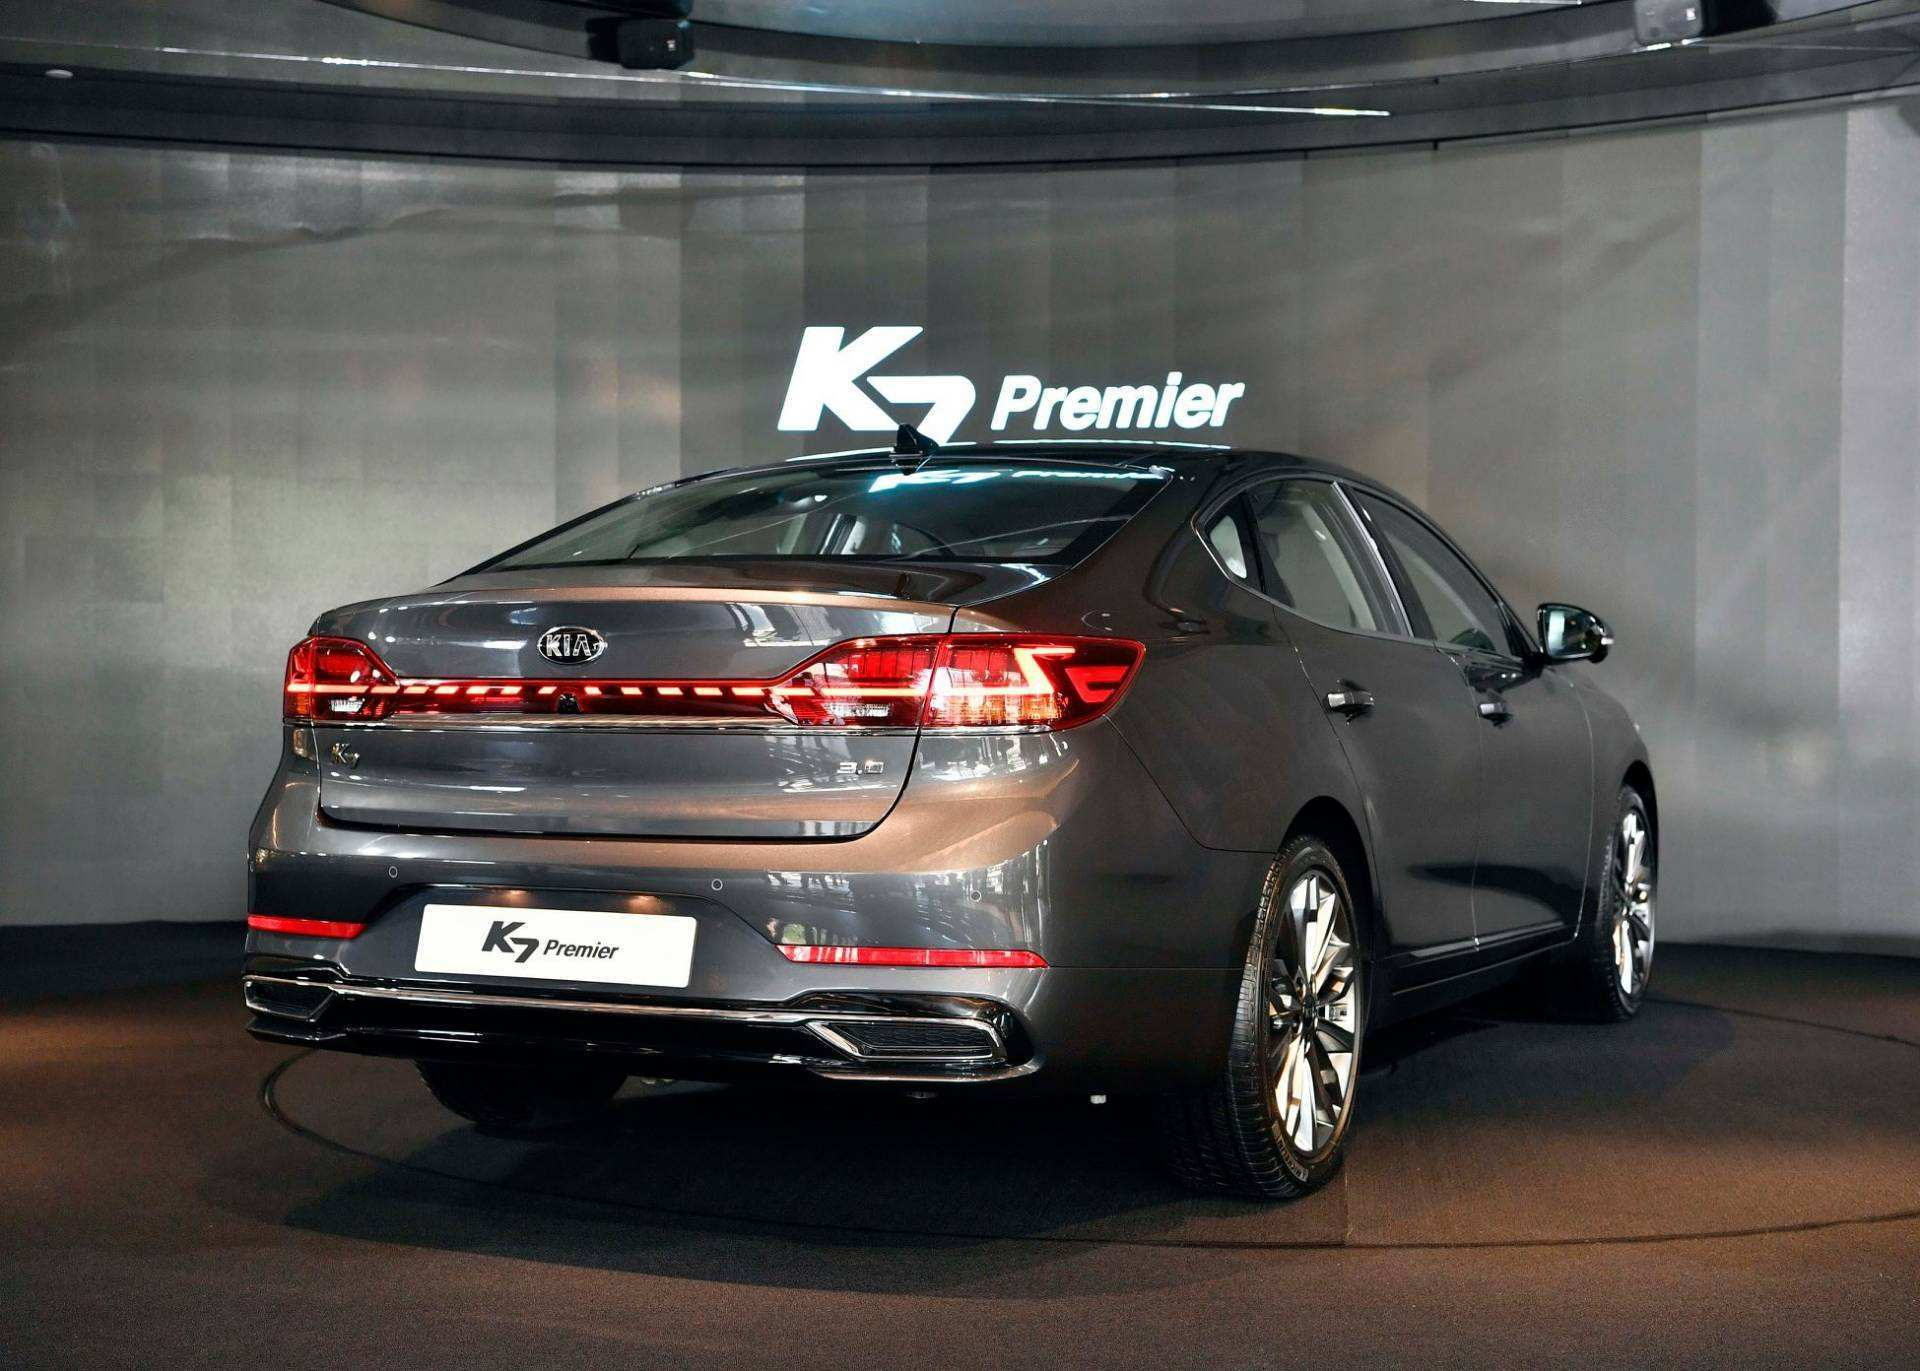 76 The Best 2020 All Kia Cadenza Review